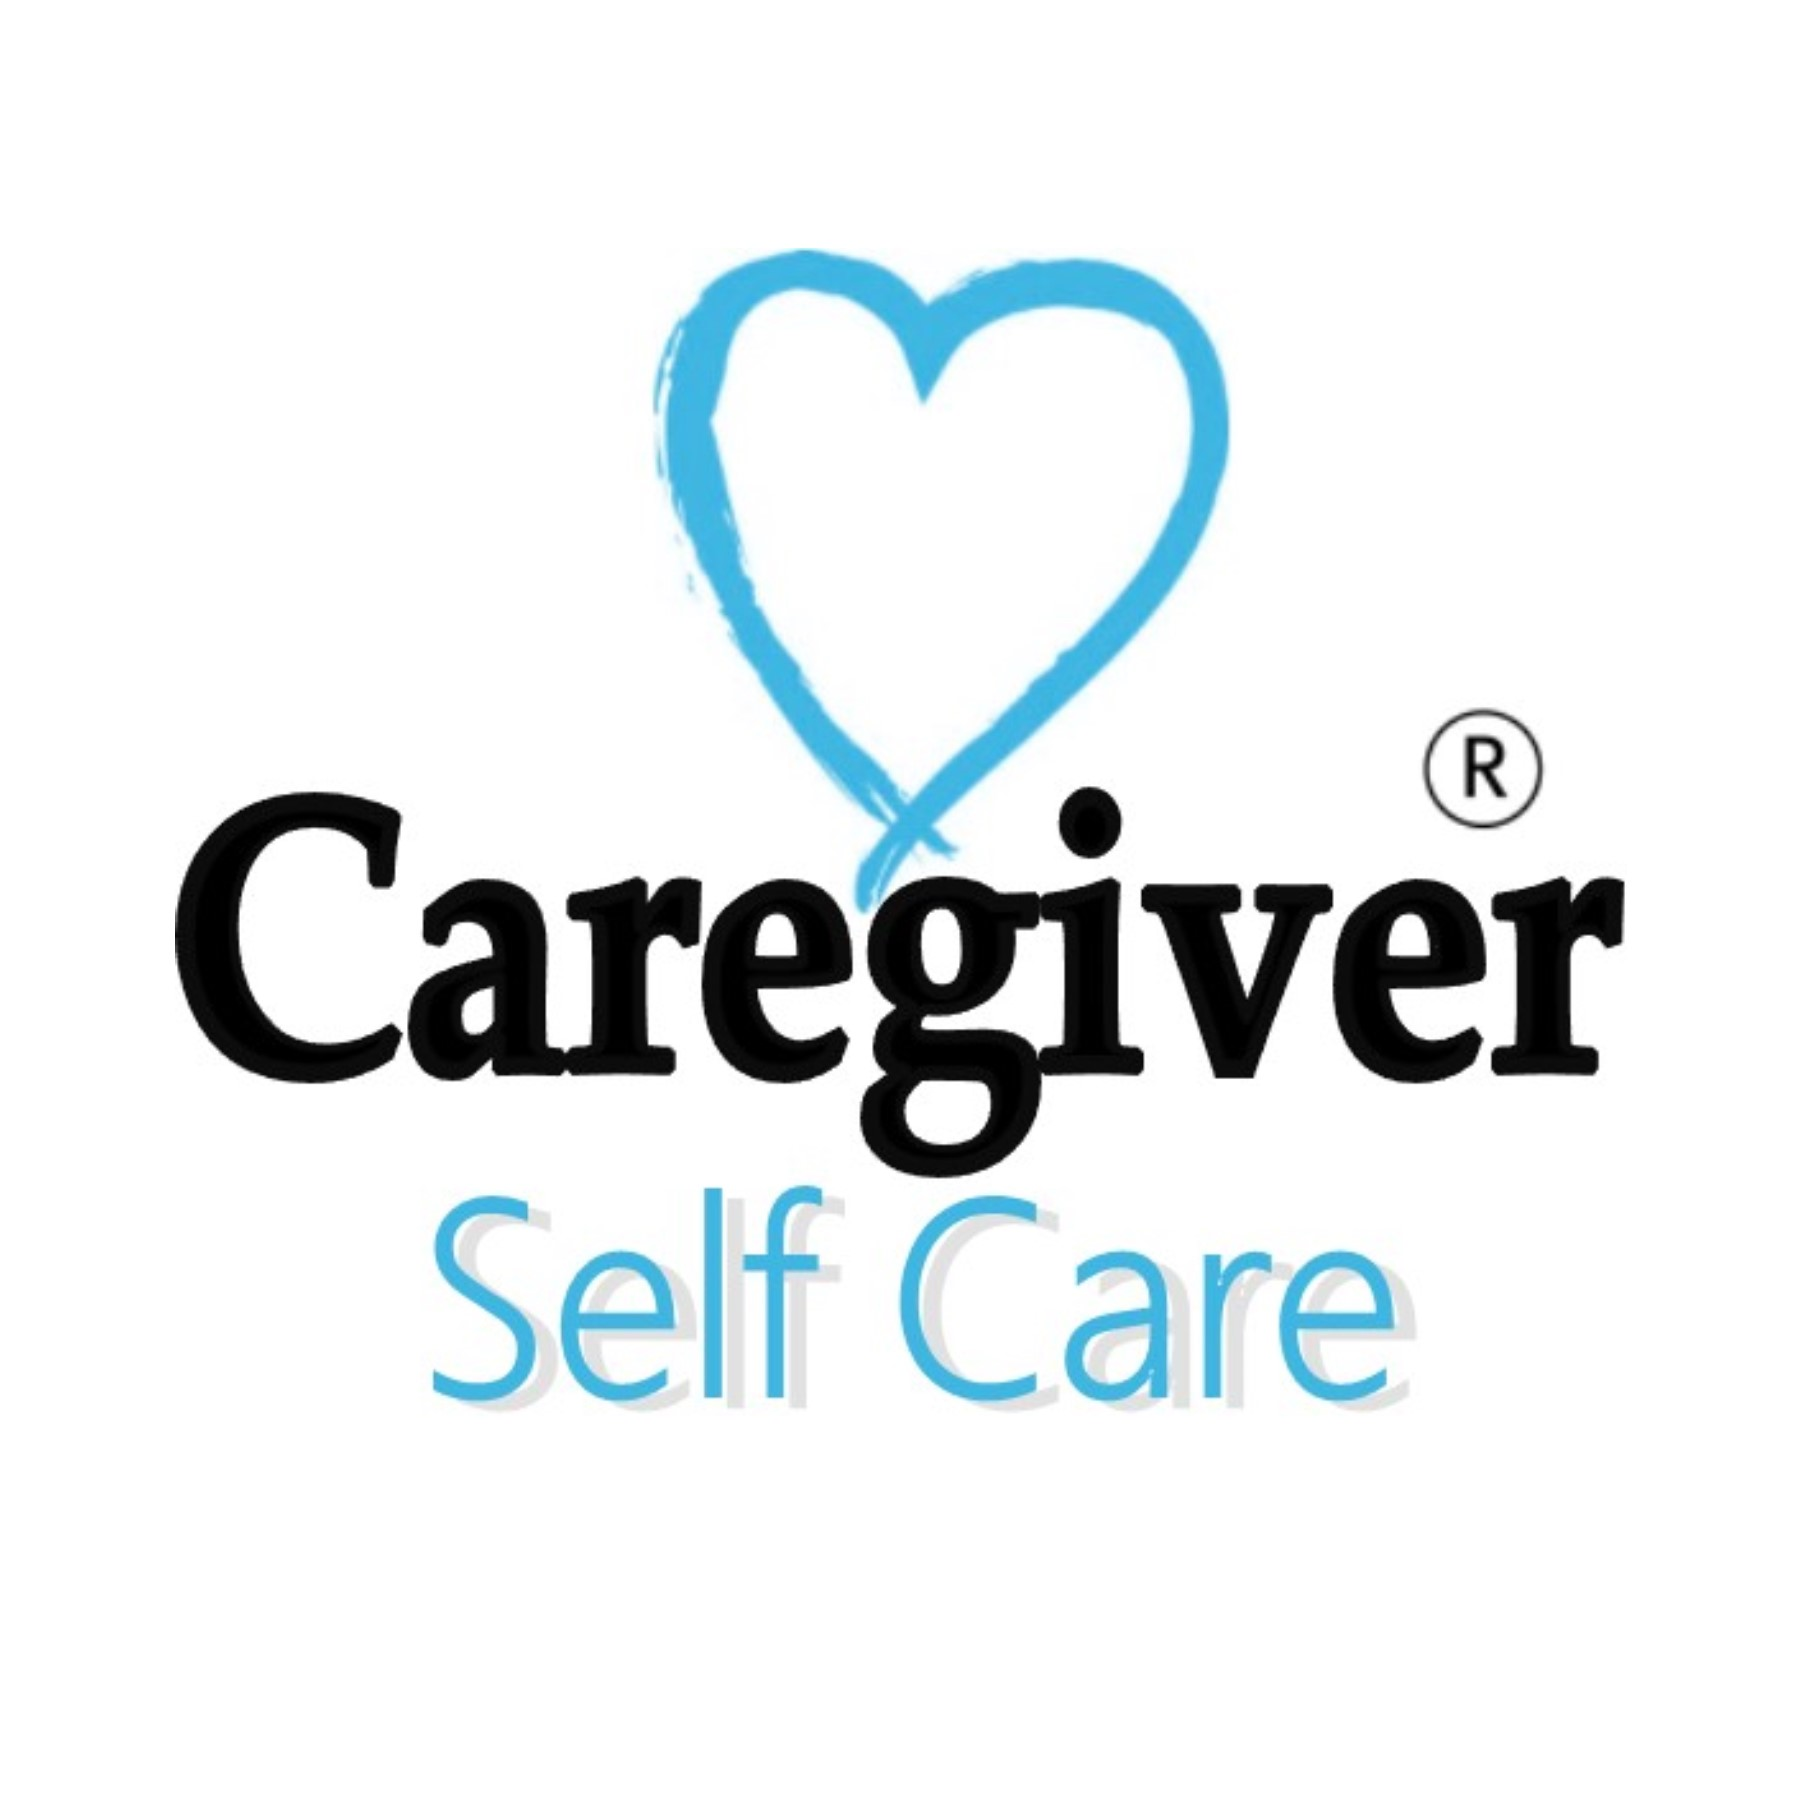 Caregiver Self Care